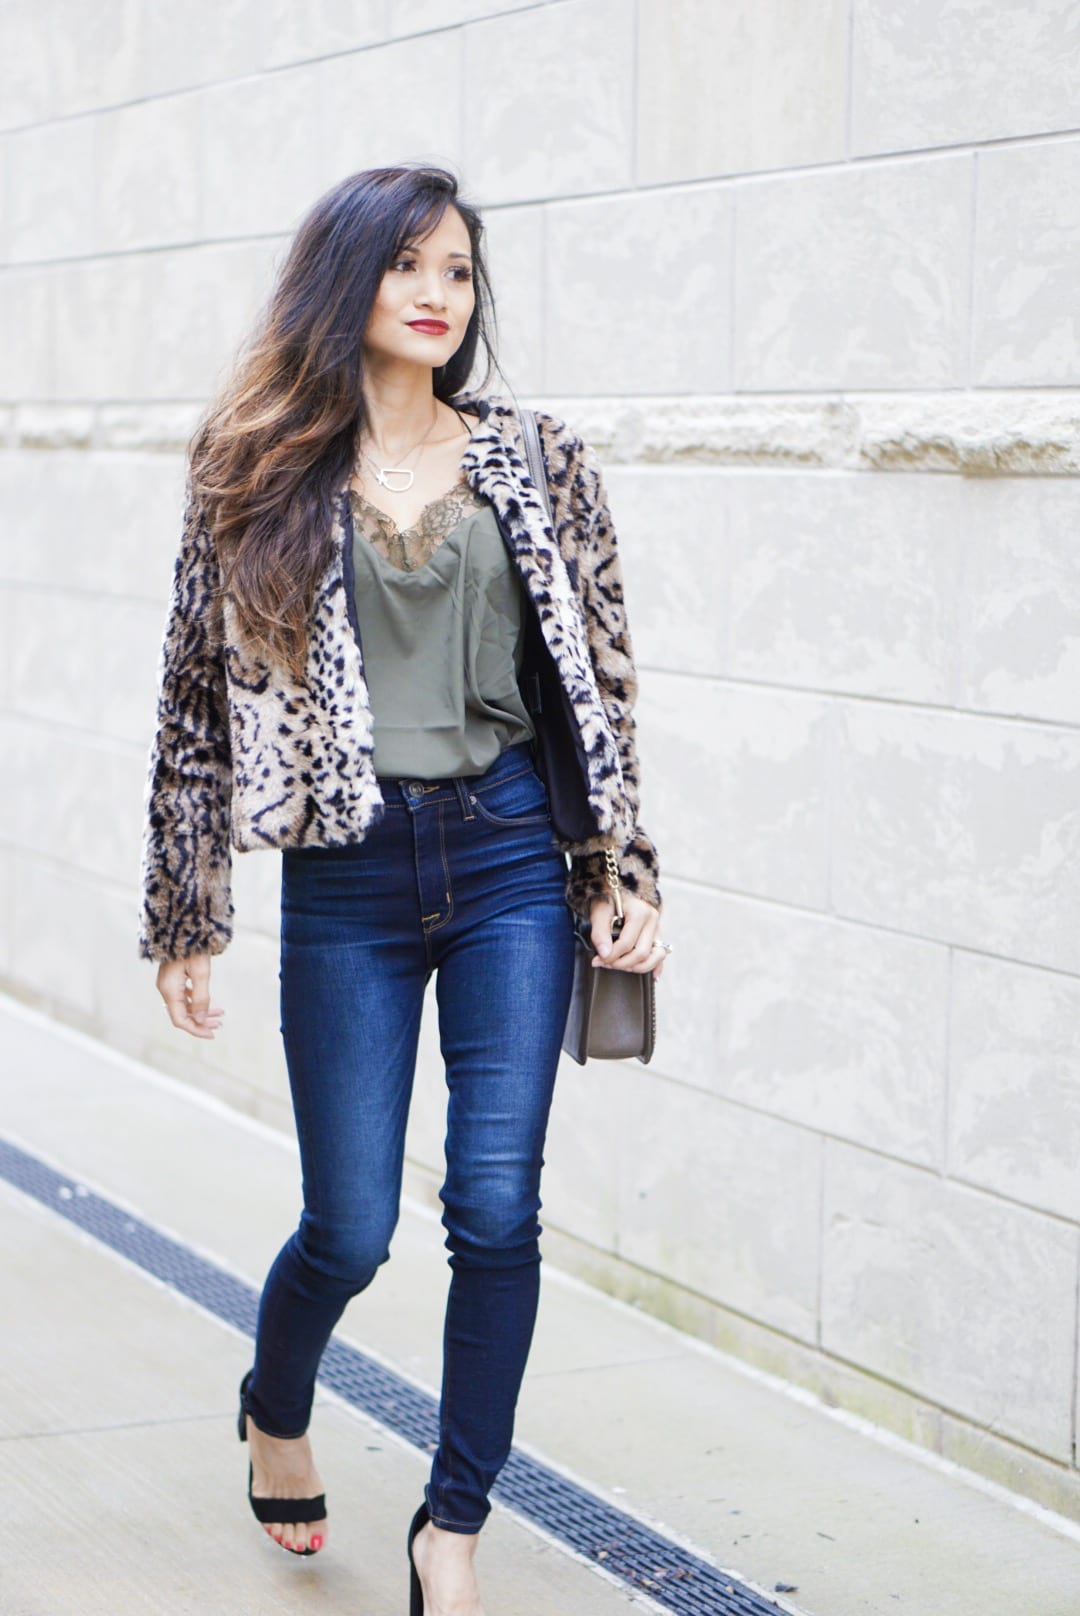 leopard coat, leopard jacket, leopard coat outfit, Evereve, free people bralette, lace cami, Rebecca mink off love crossbody bag, Steve Madden black sandals, date night outfit, initial necklace, Hudson skinny jeans